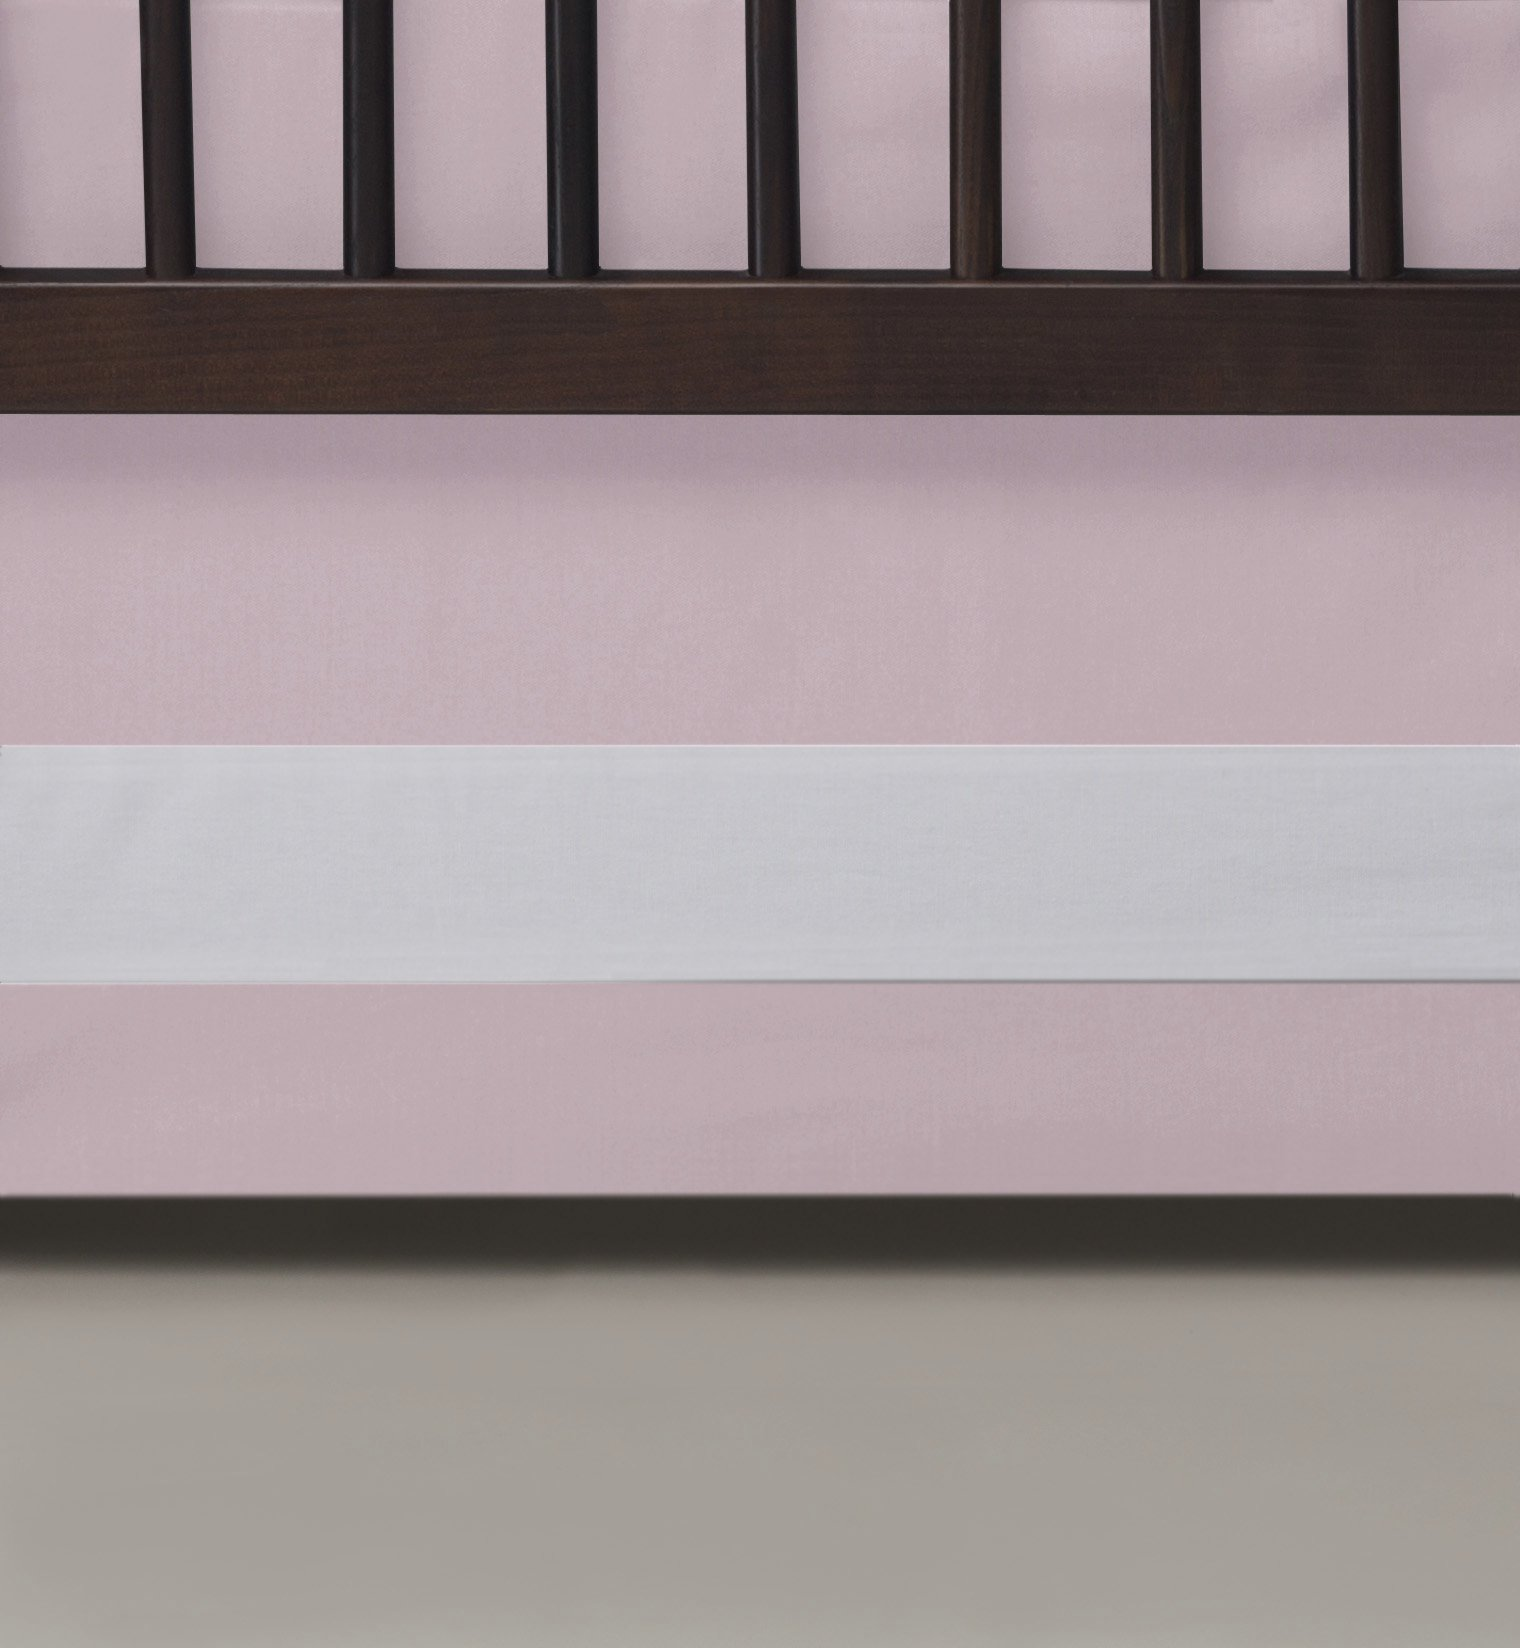 Oilo Woven Cotton Band Crib Skirt, Blush by Oilo